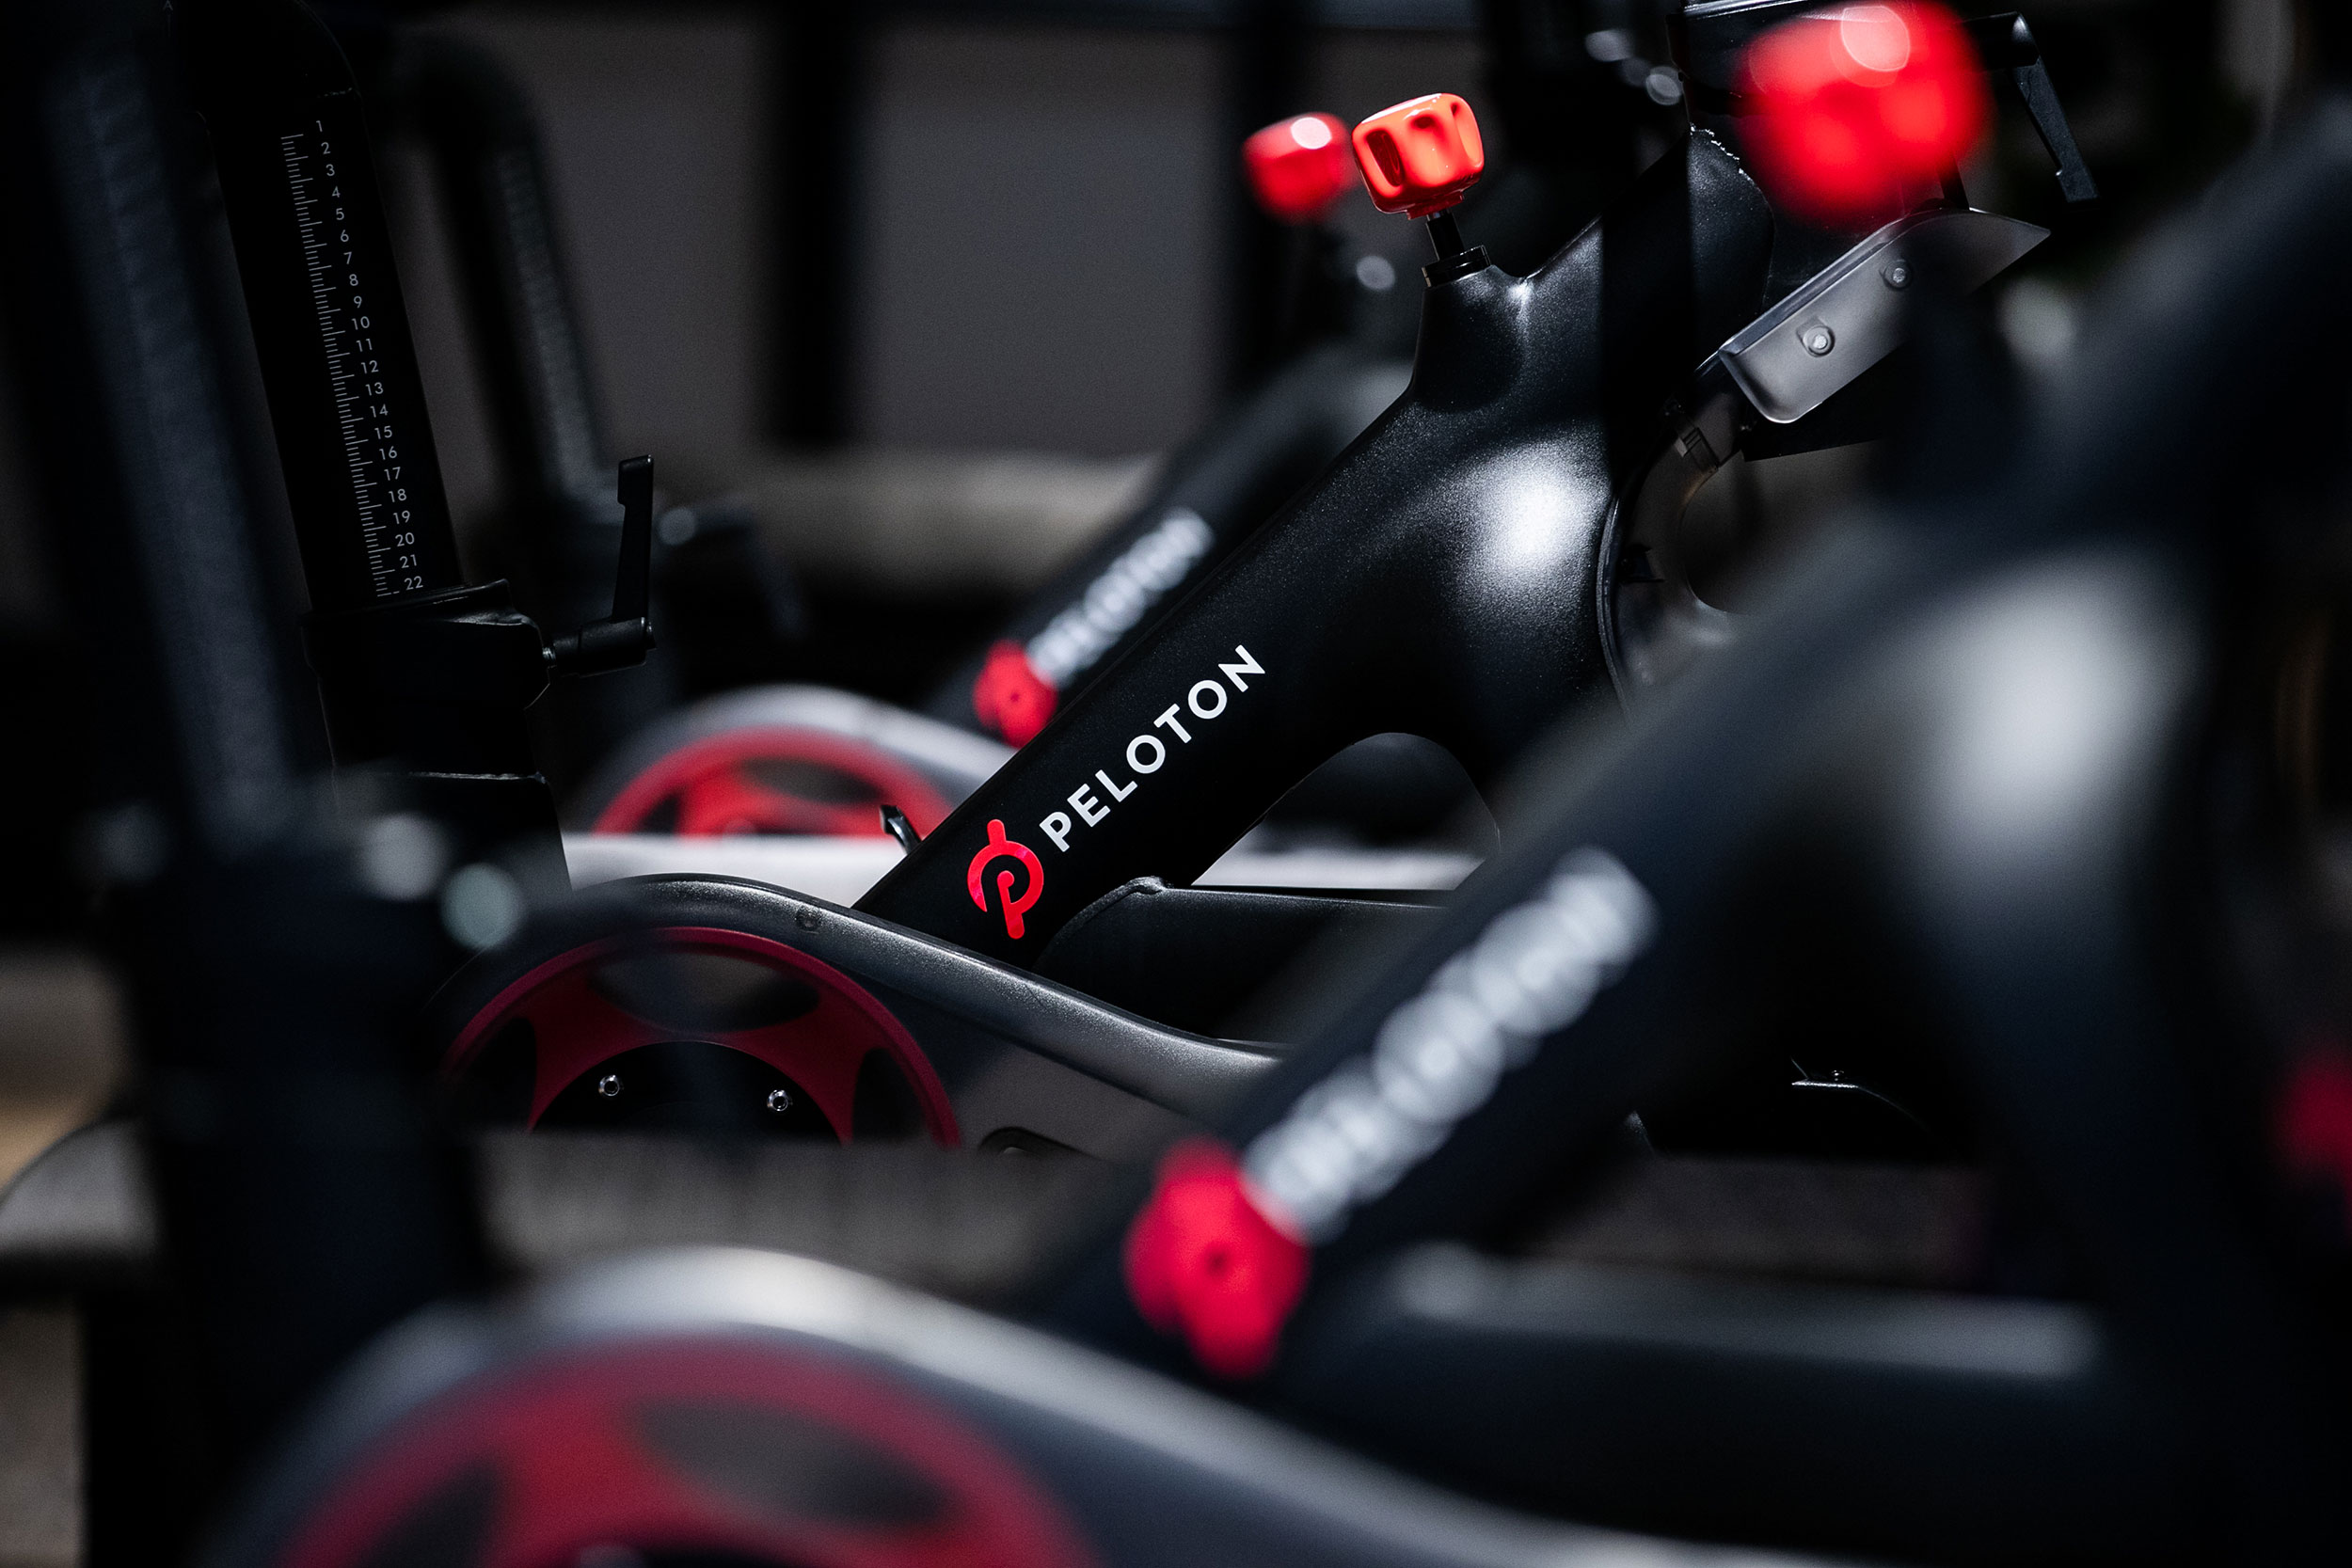 Peloton cancels live video classes for April after employee contracts coronavirus